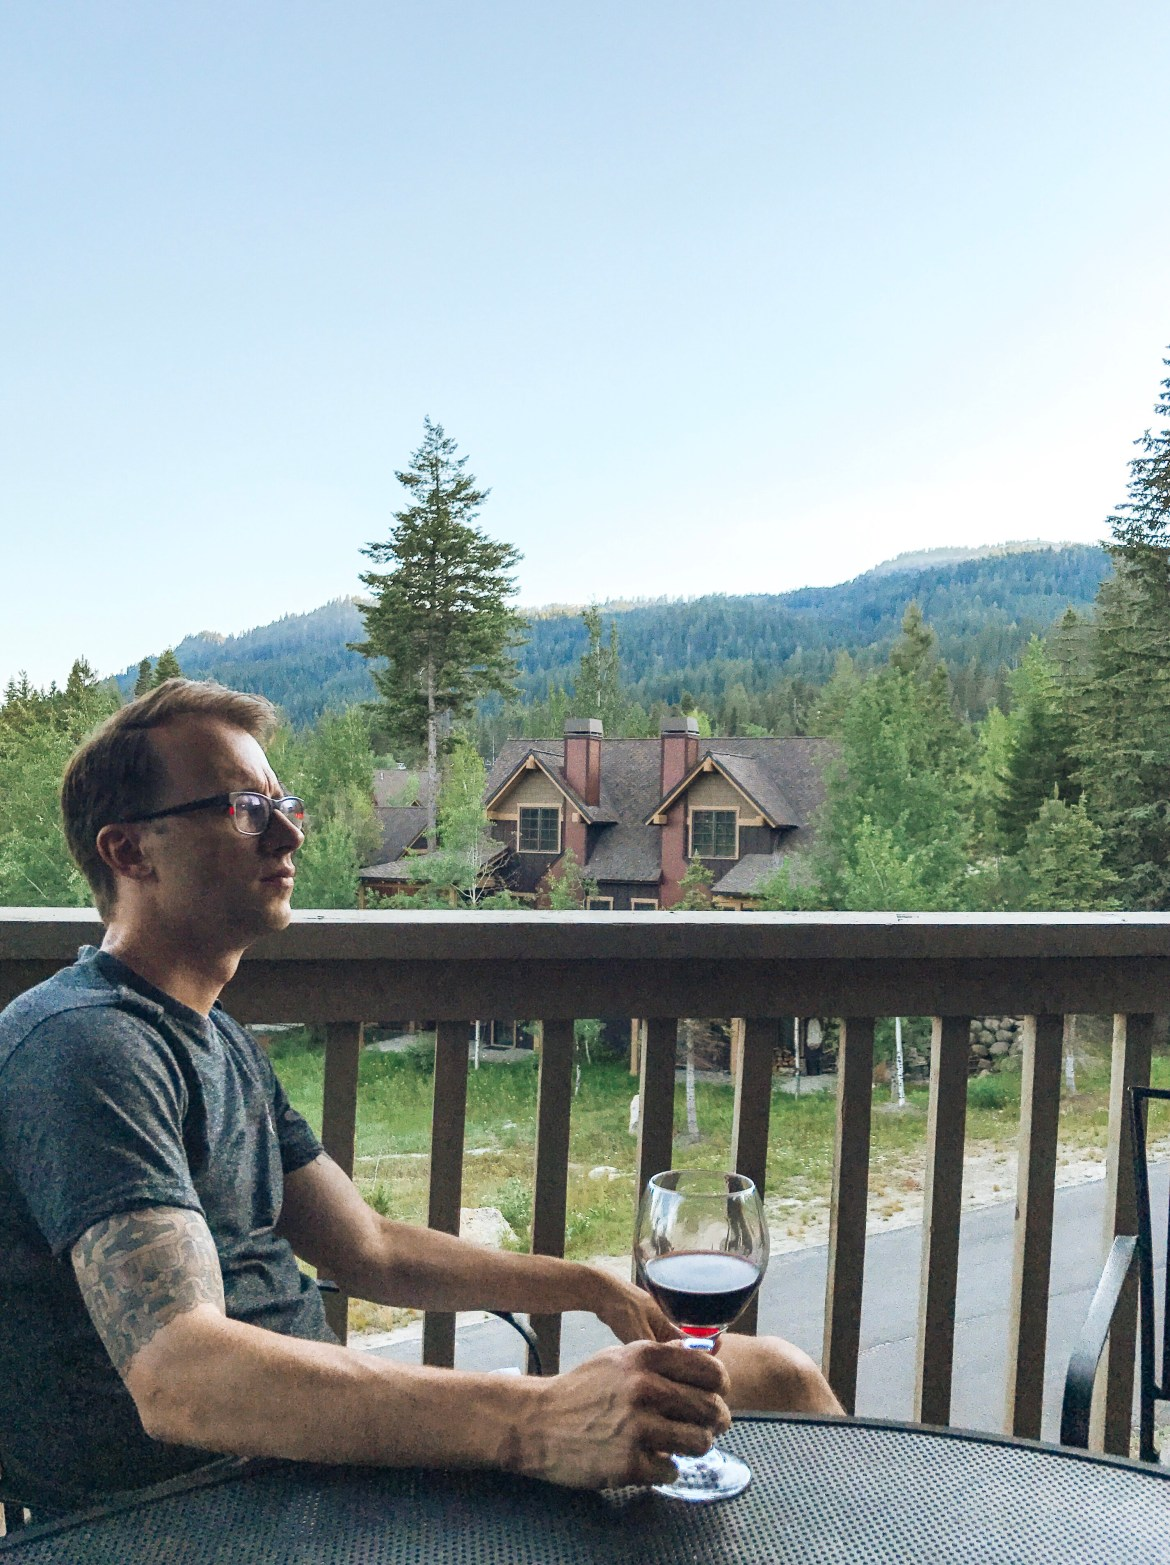 Idaho Resorts: Tamarack Resort.  Ben sits with a glass of Cabernet Savignon at a vacation rental cabin at Idaho's Tamarack Resort near Donnelly and Cascade off of Highway 55.  The resort has two rental options for cabins, homes, and other mountain accommodations.